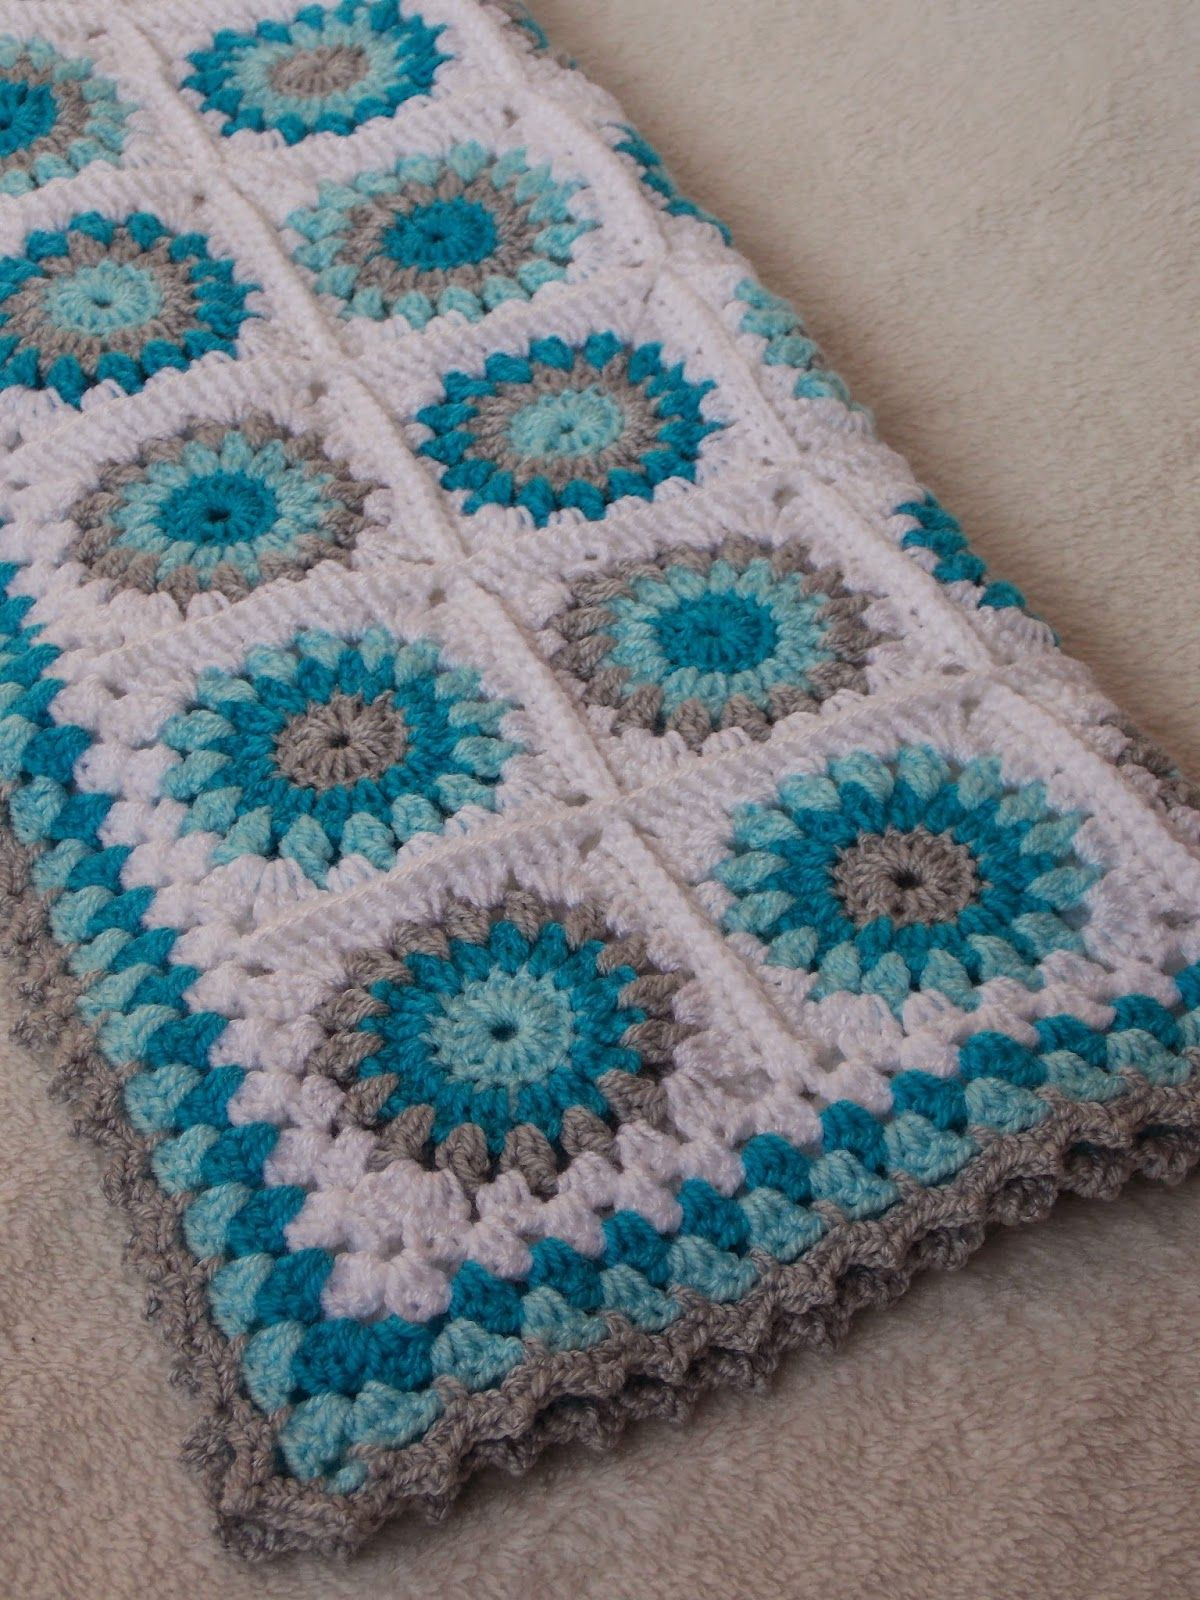 bBeautiful colours in this baby blanket by Renate She